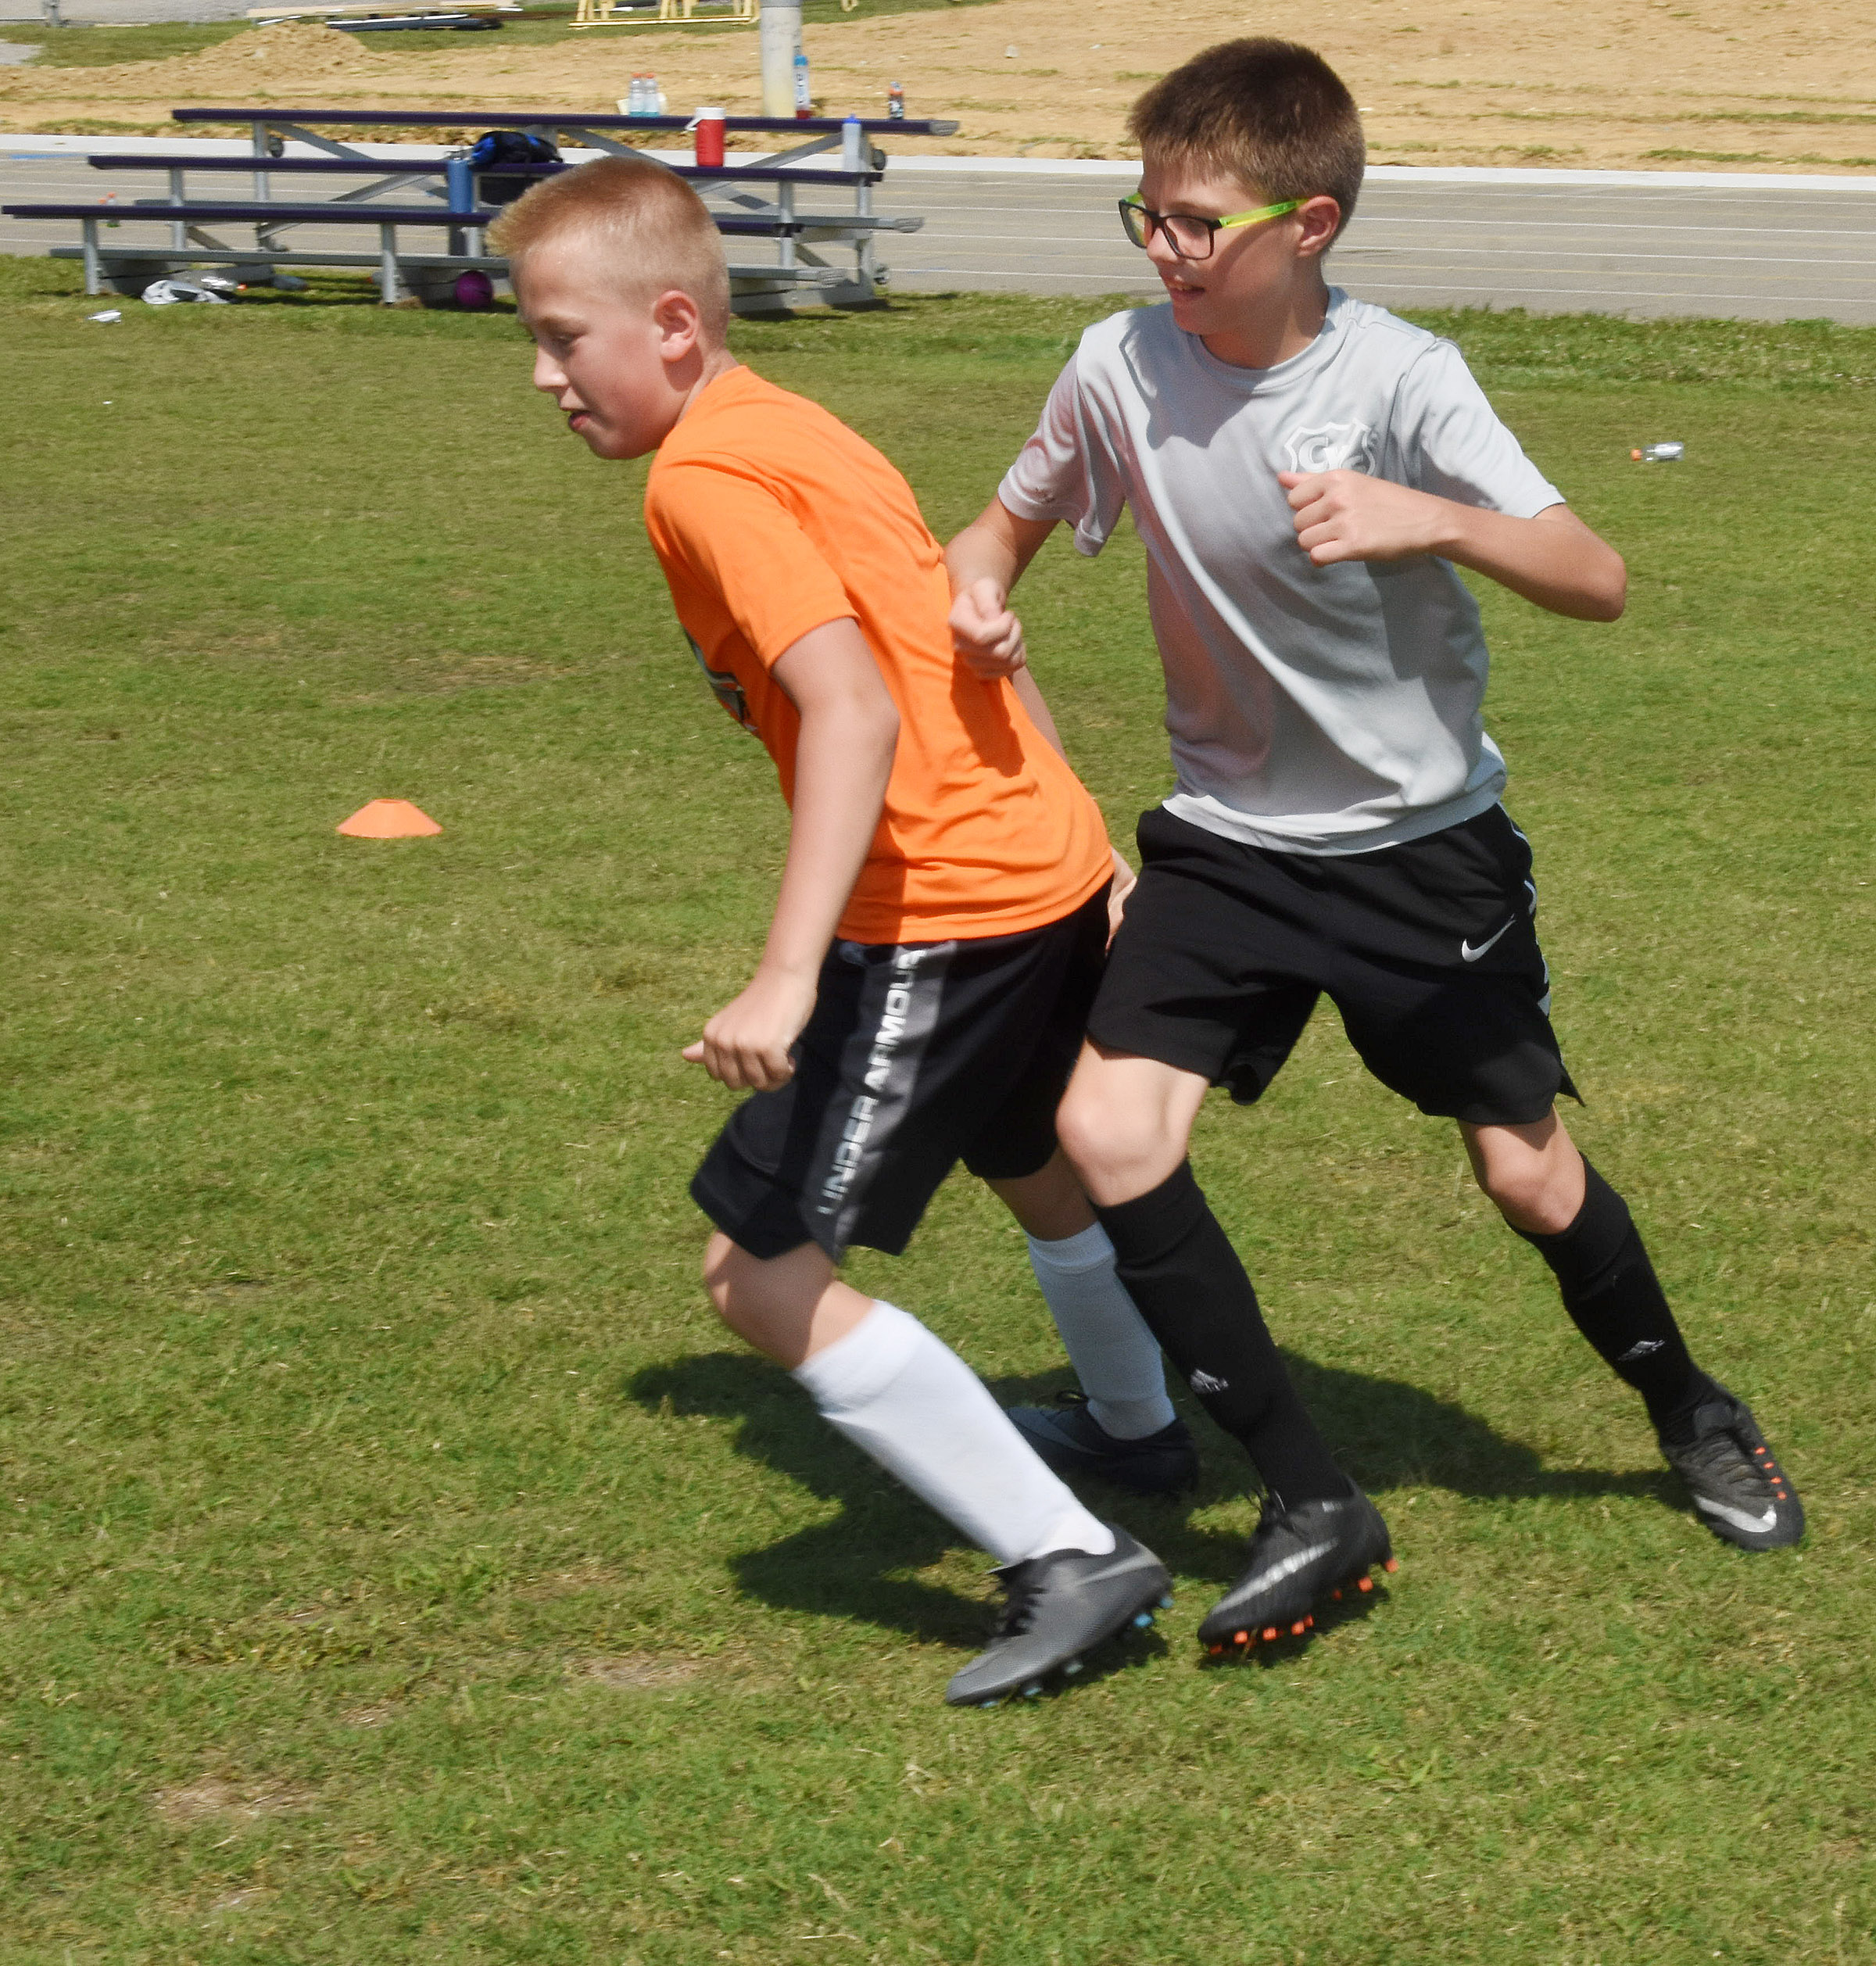 Zander Smith, at left, and Campbellsville Middle School sixth-grader Ethan Murphy compete in a drill.